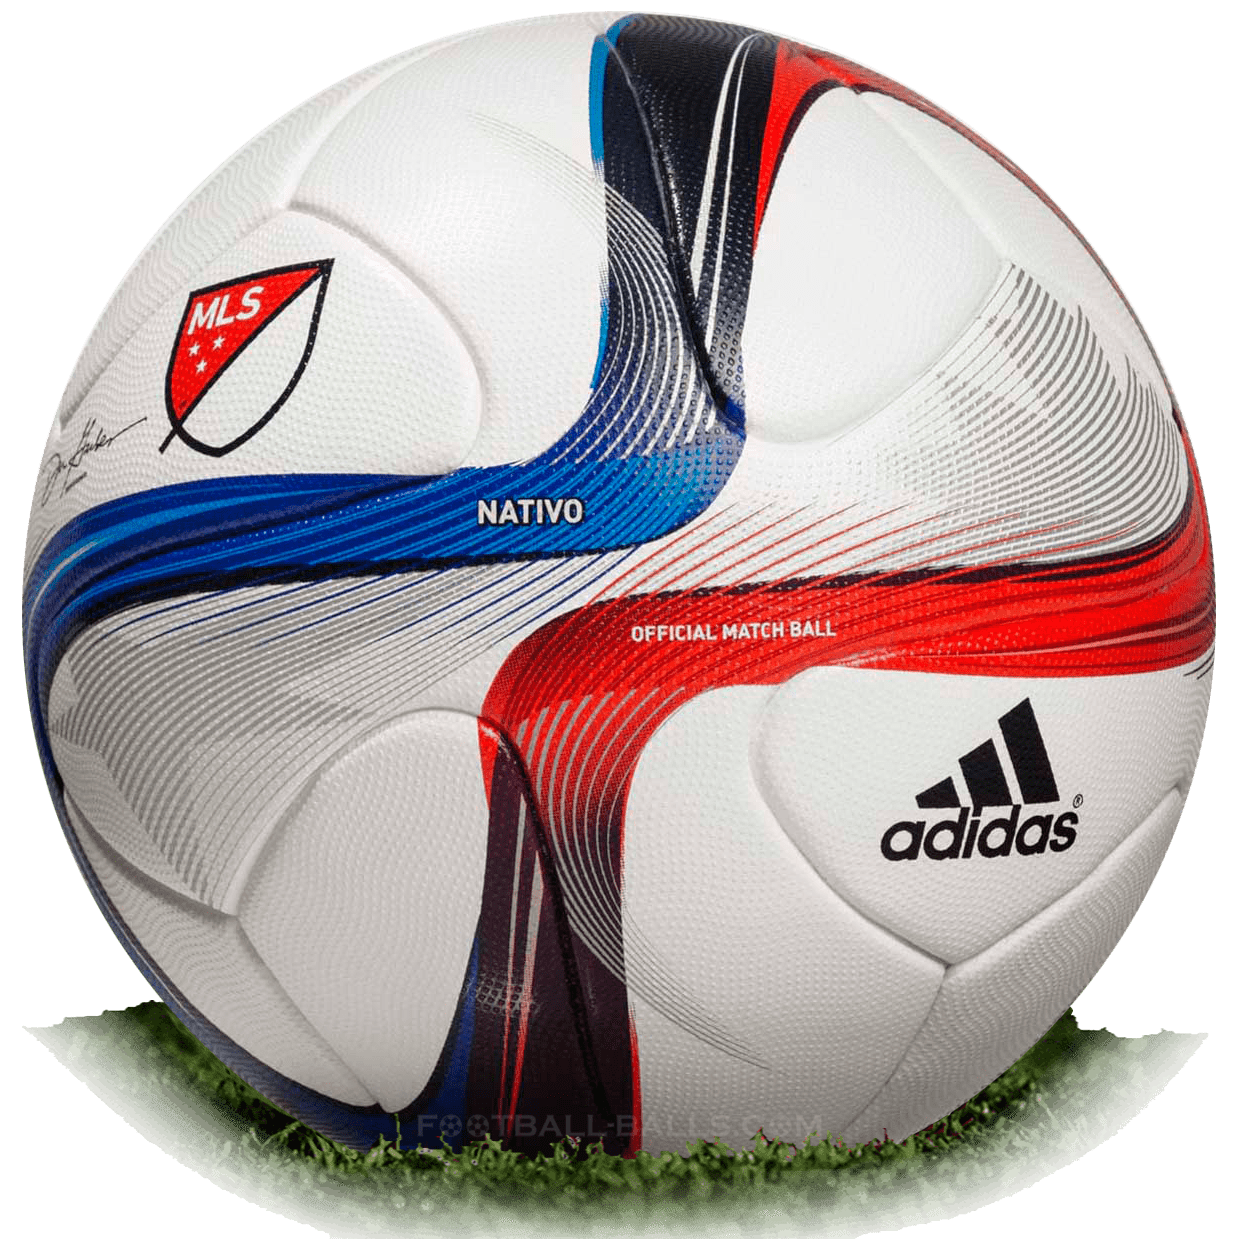 Adidas Nativo Is Official Match Ball Of Mls 2015 Football Balls Database